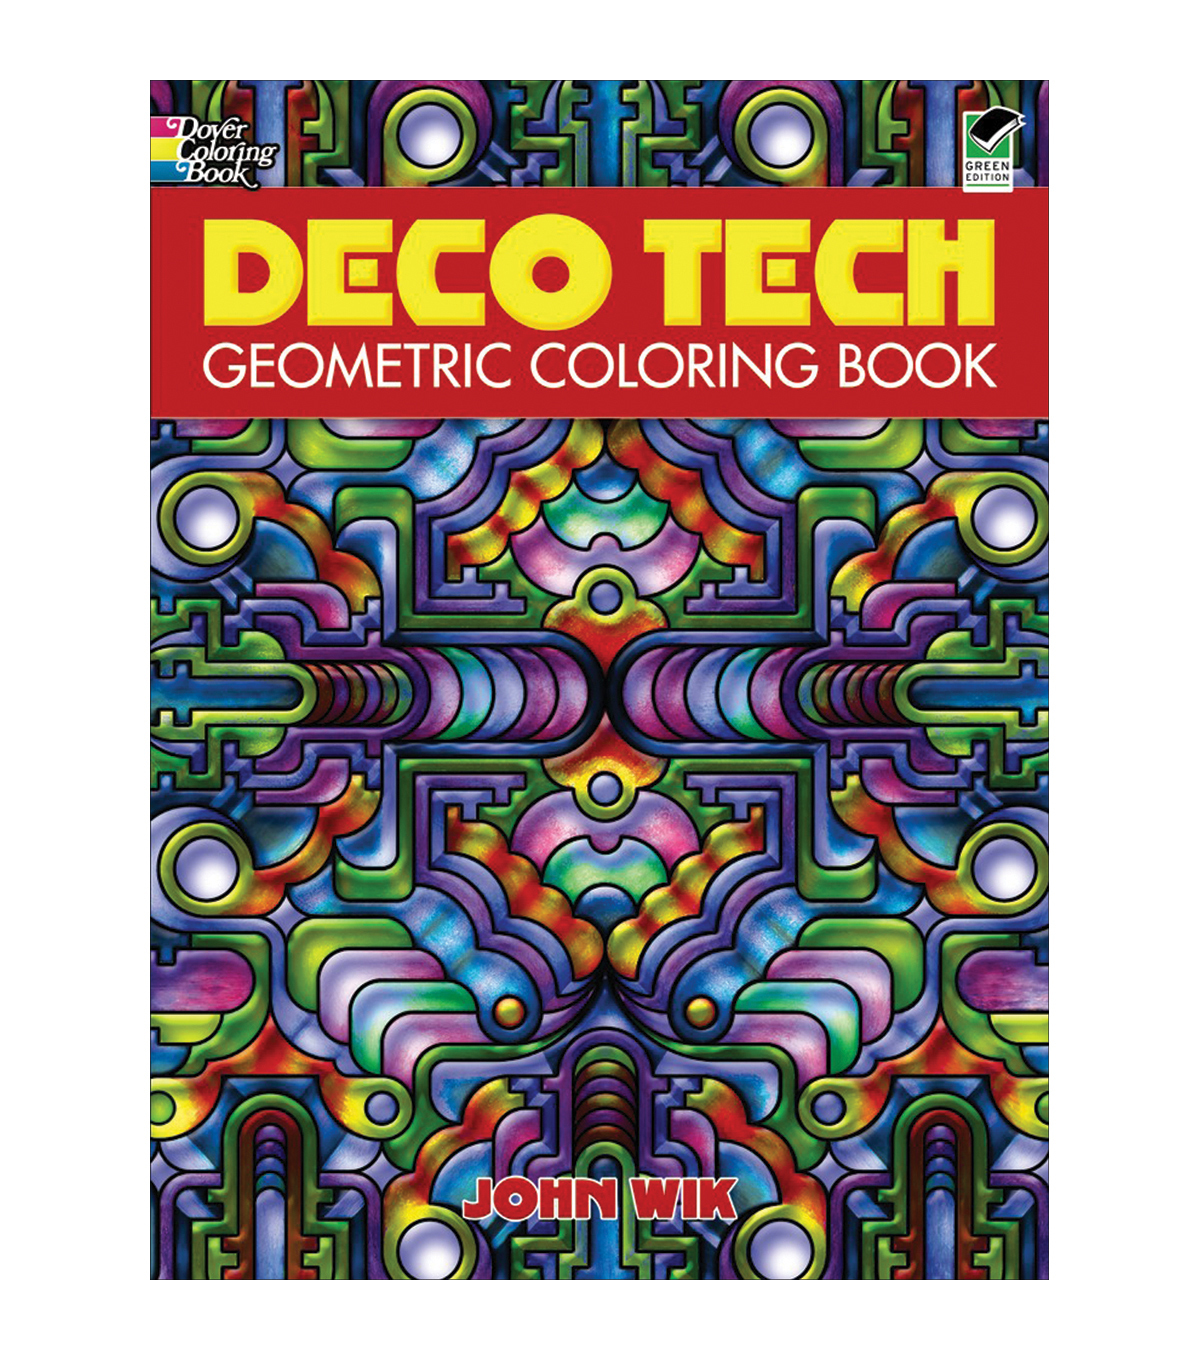 Deco Tech Geometric Coloring Book | JOANN